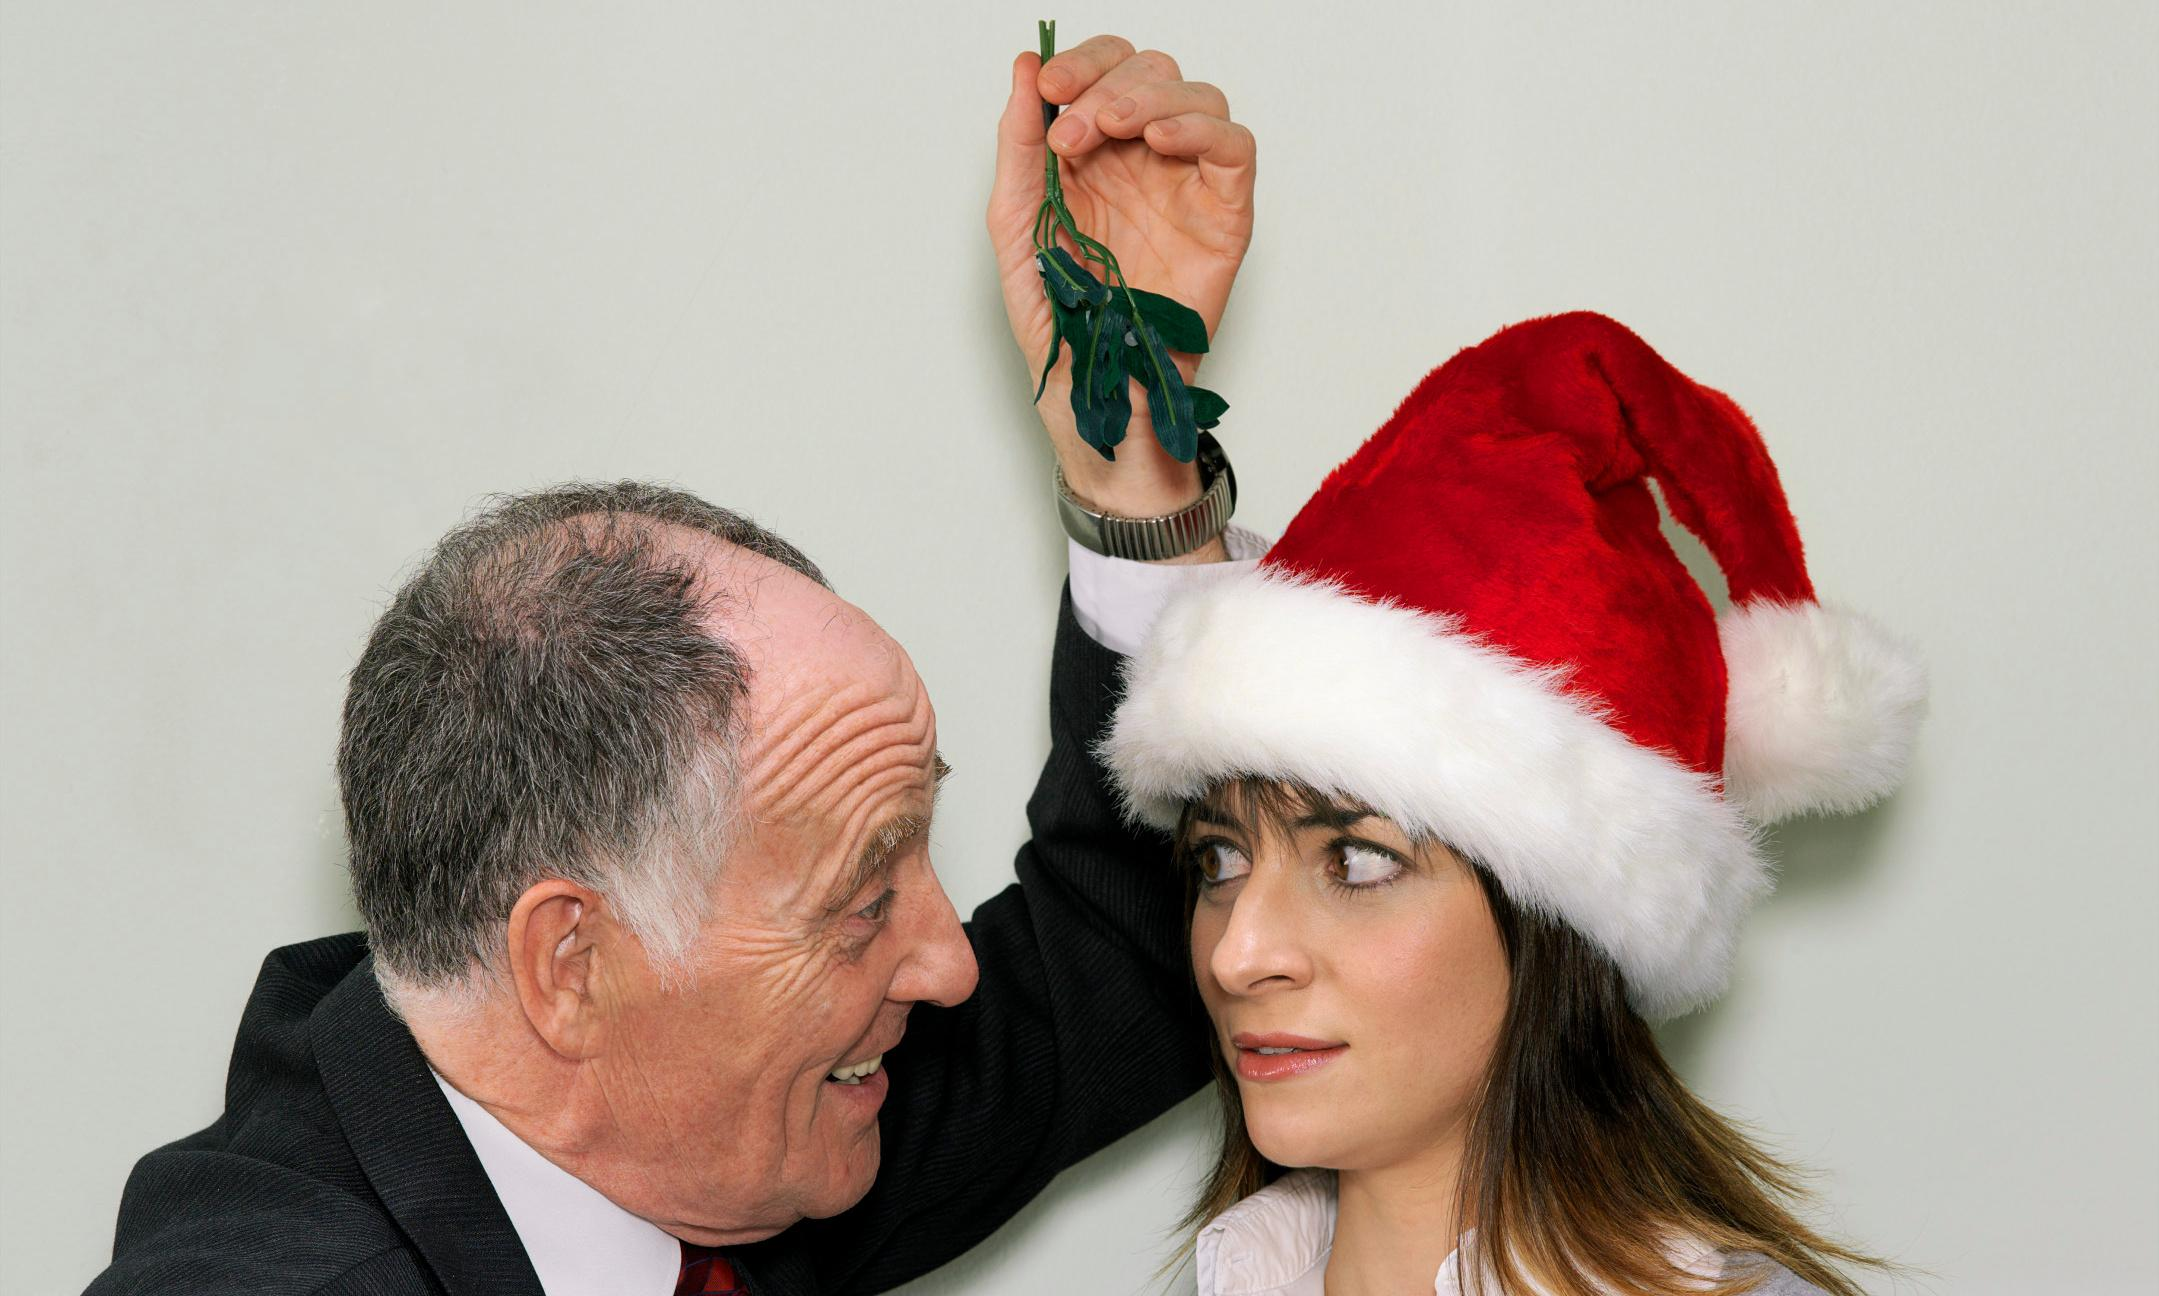 There are plenty of ways to have your night – and career – ruined at the office Christmas party